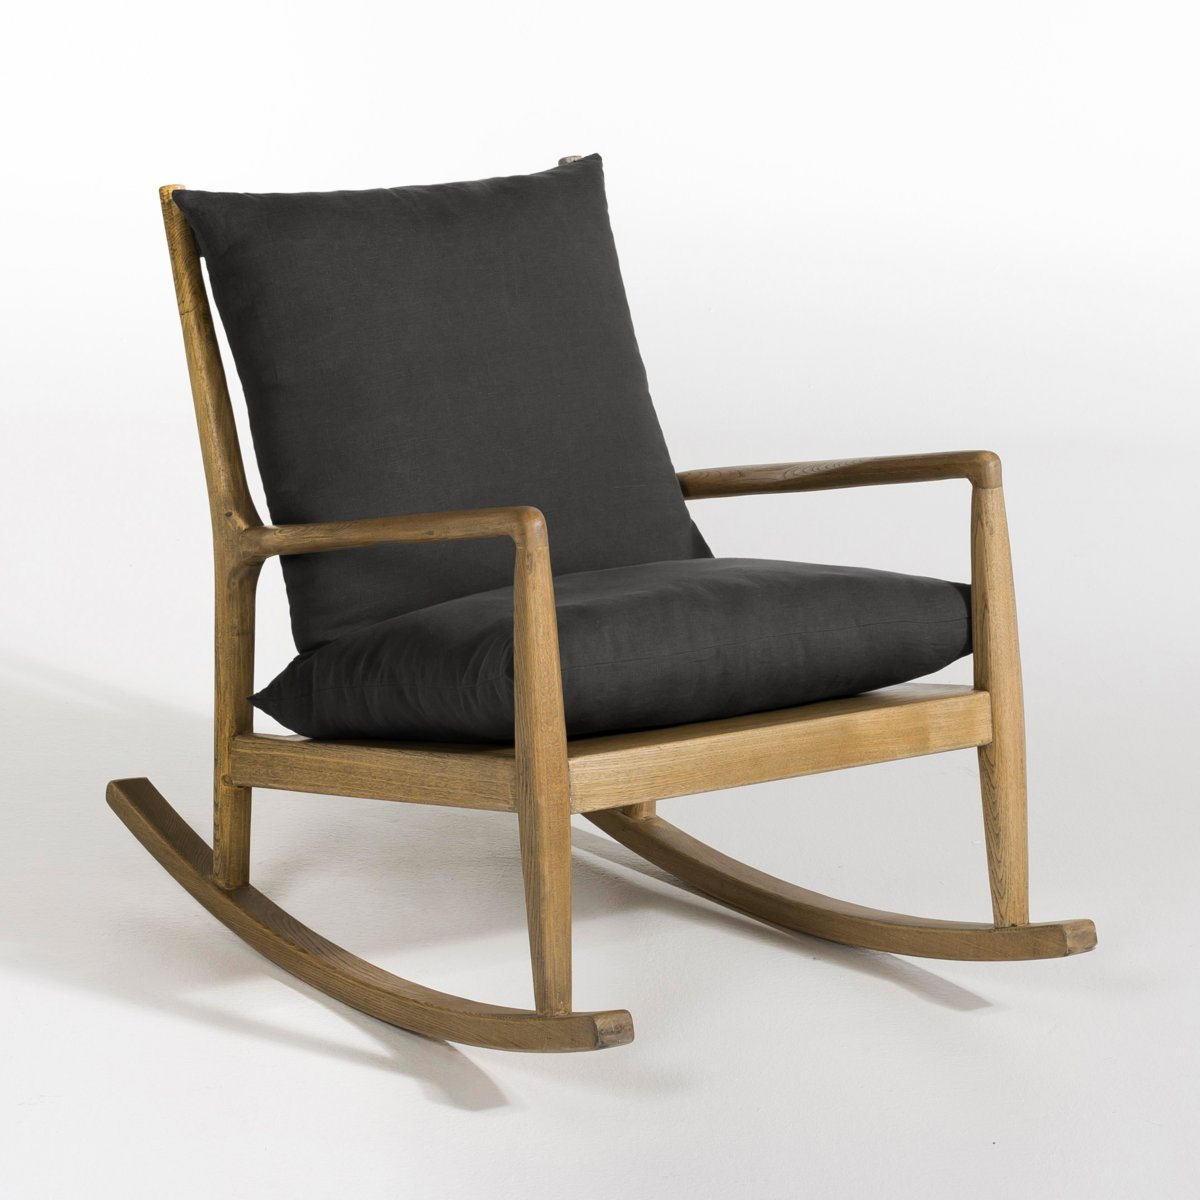 Rocking chair Dilma